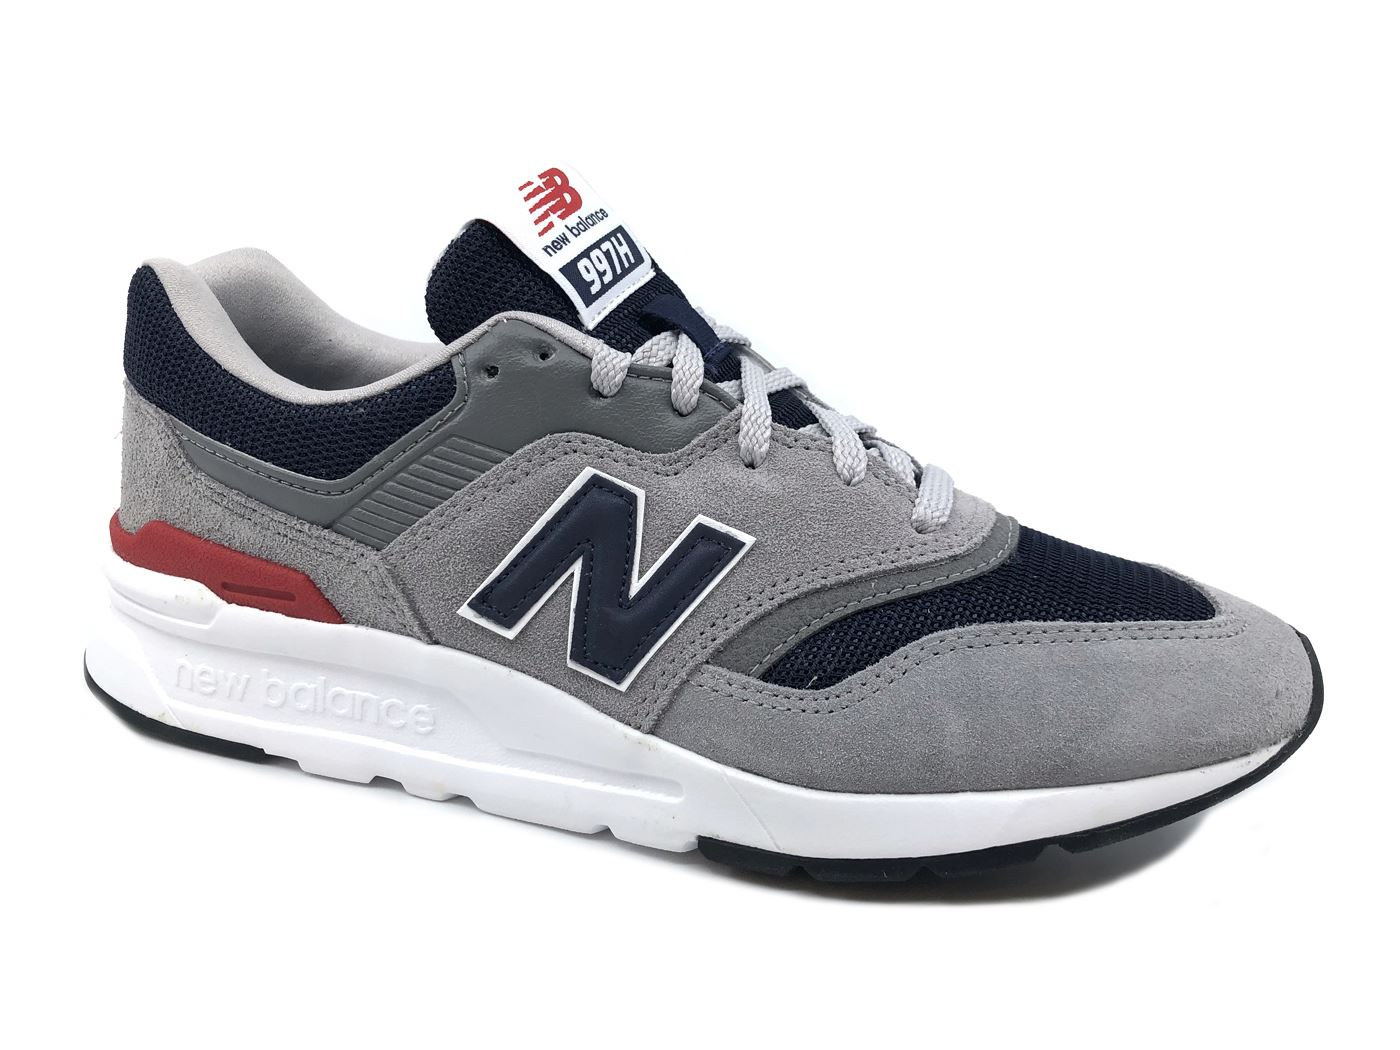 NEW BALANCE M997HCJ SUEDE SUEDE SUEDE MESH GREY NAVY RED SNEAKER men MainApps 9fc025